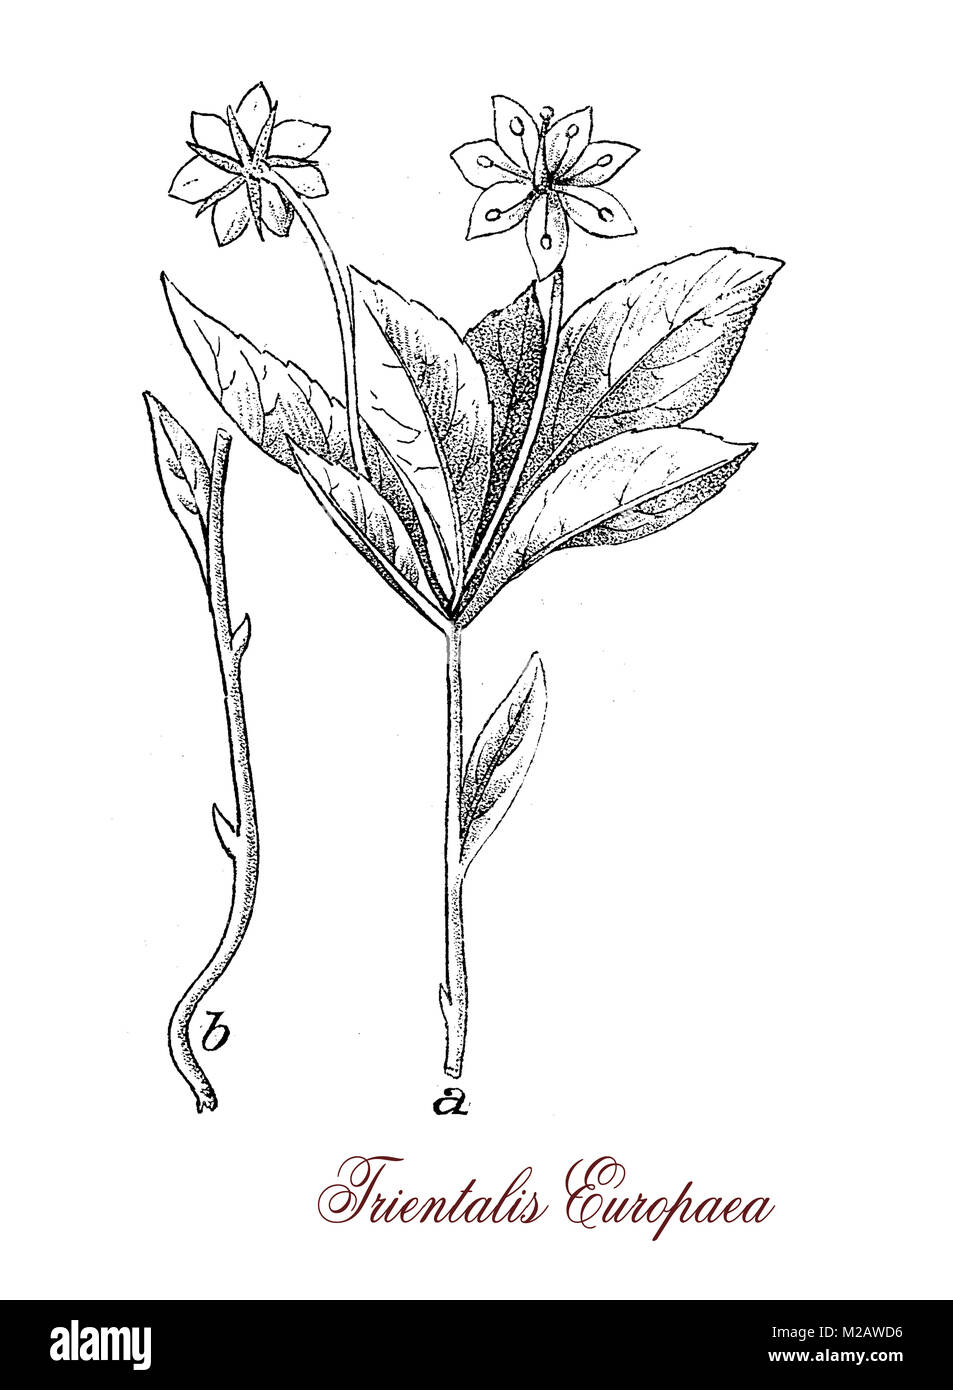 vintage engraving of trientalis europaea,flowering plant of the Primulaceae family with beautiful white flowers. - Stock Image